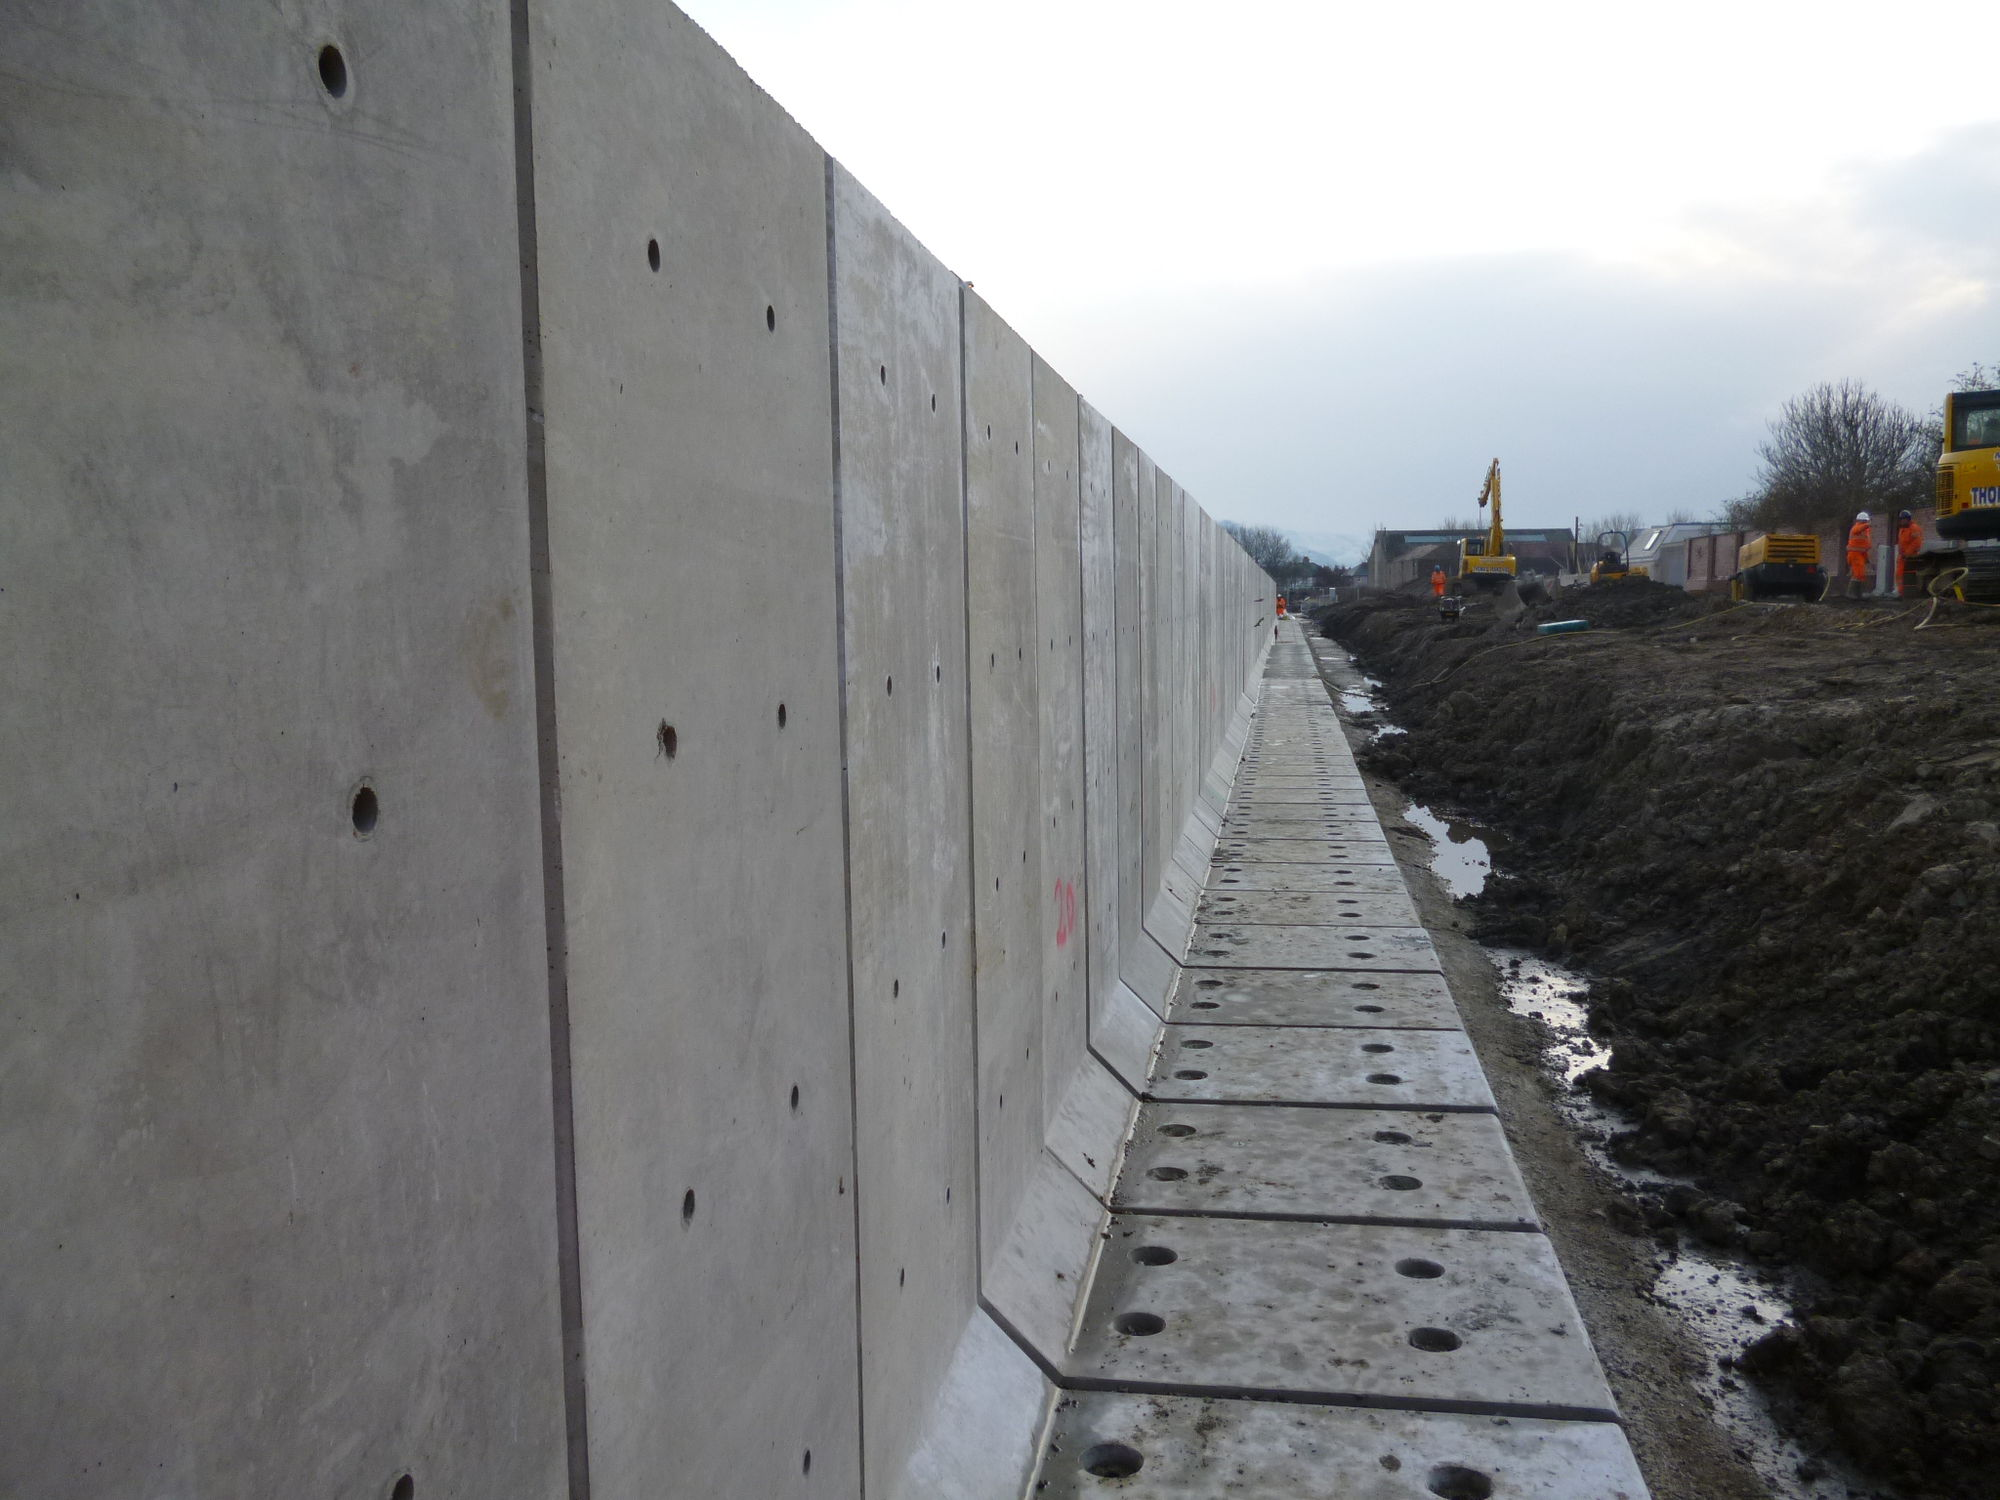 Concrete retaining wall - L SHAPE - CPM Group Ltd - modular / for exterior  fittings / road